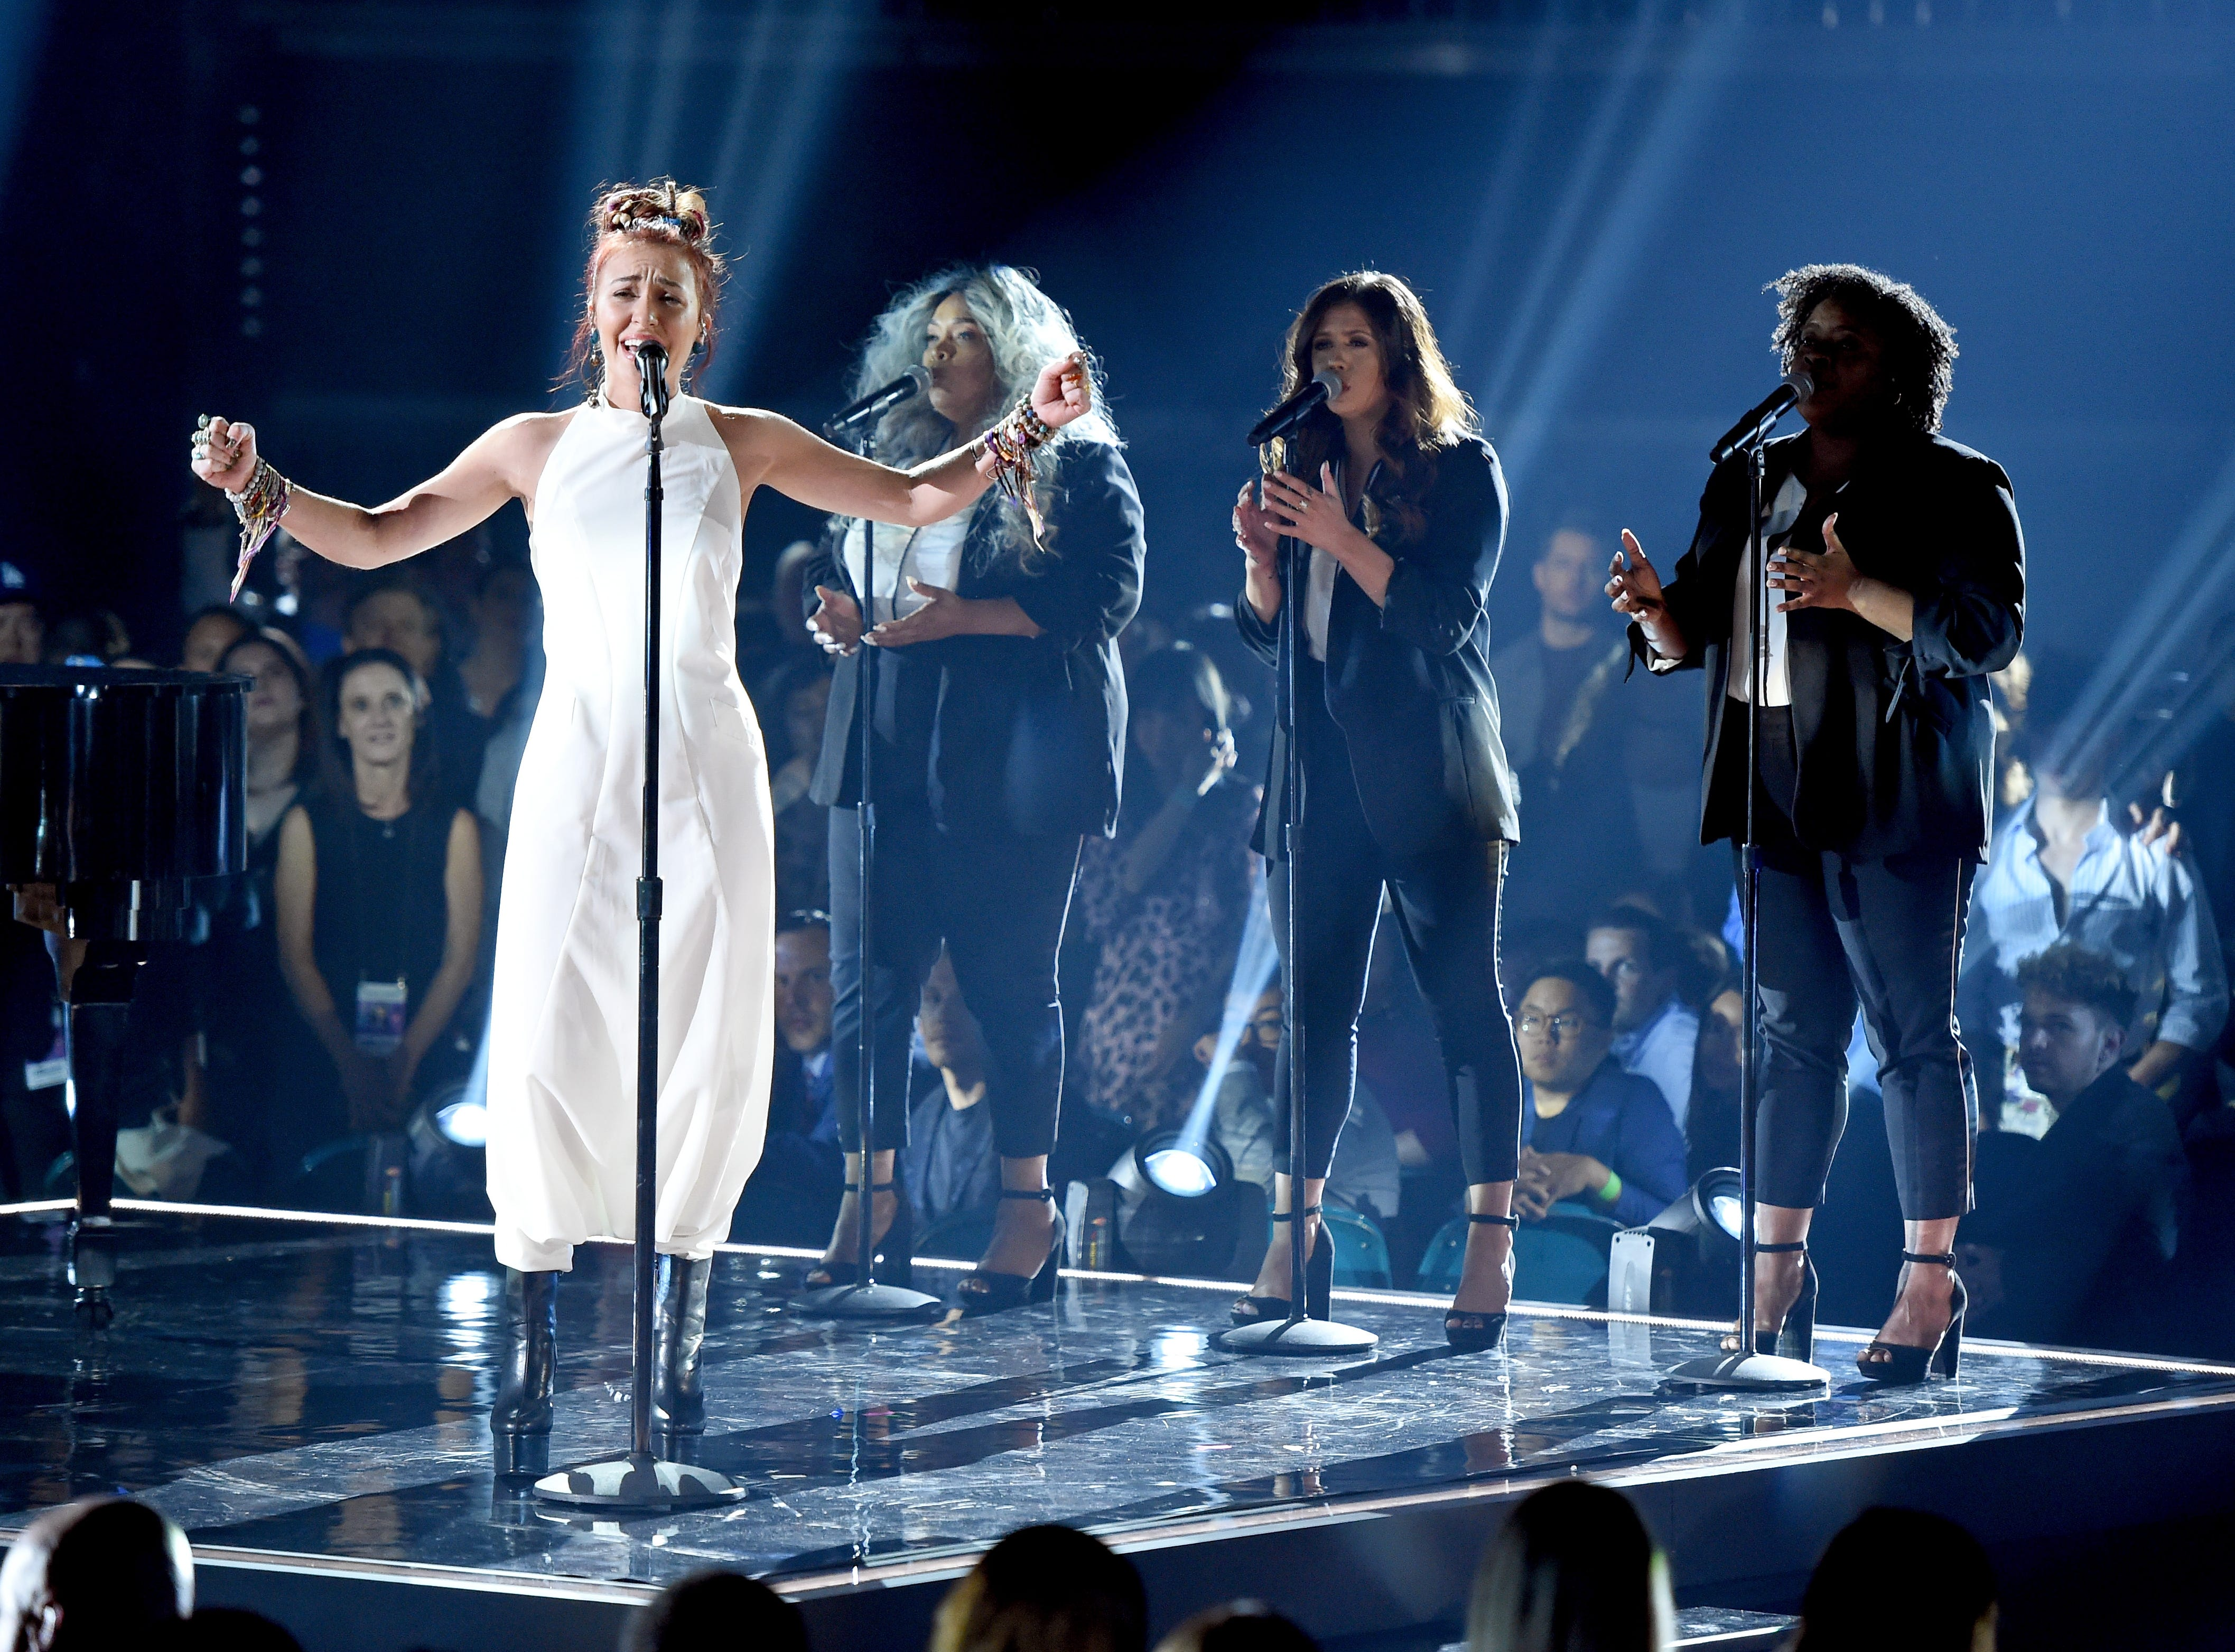 Lauren Daigle performs onstage during the 2019 Billboard Music Awards at MGM Grand Garden Arena on May 1, 2019 in Las Vegas, Nevada.